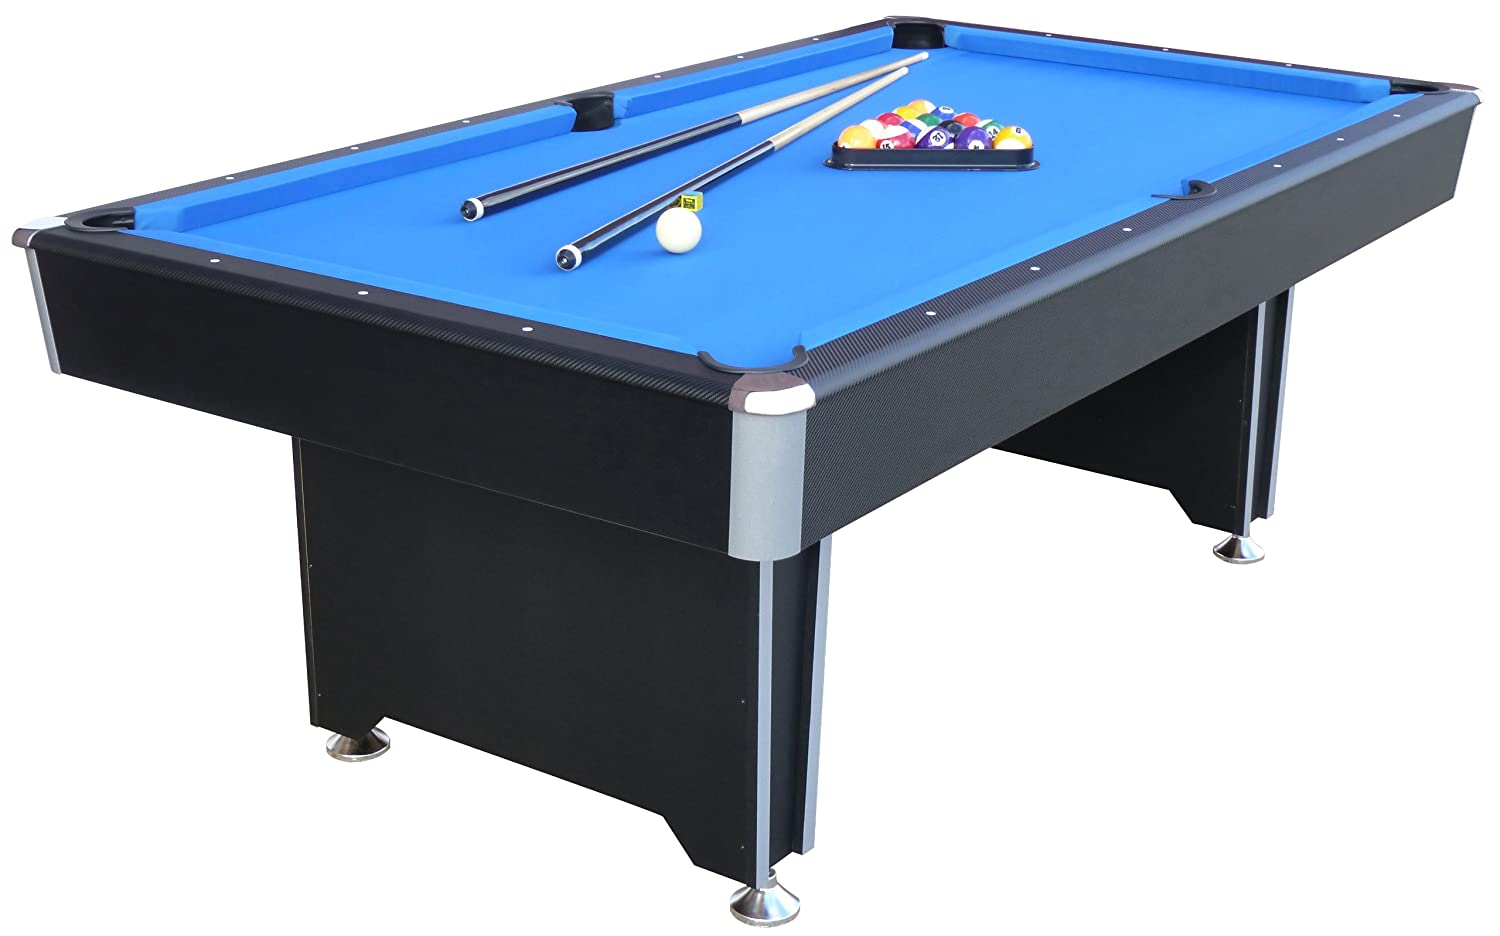 Awesome Mightymast Leisure 7ft CALLISTO Professional Deluxe American Pool Table  With Blue Cloth U0026 All Accessories: Amazon.co.uk: Sports U0026 Outdoors